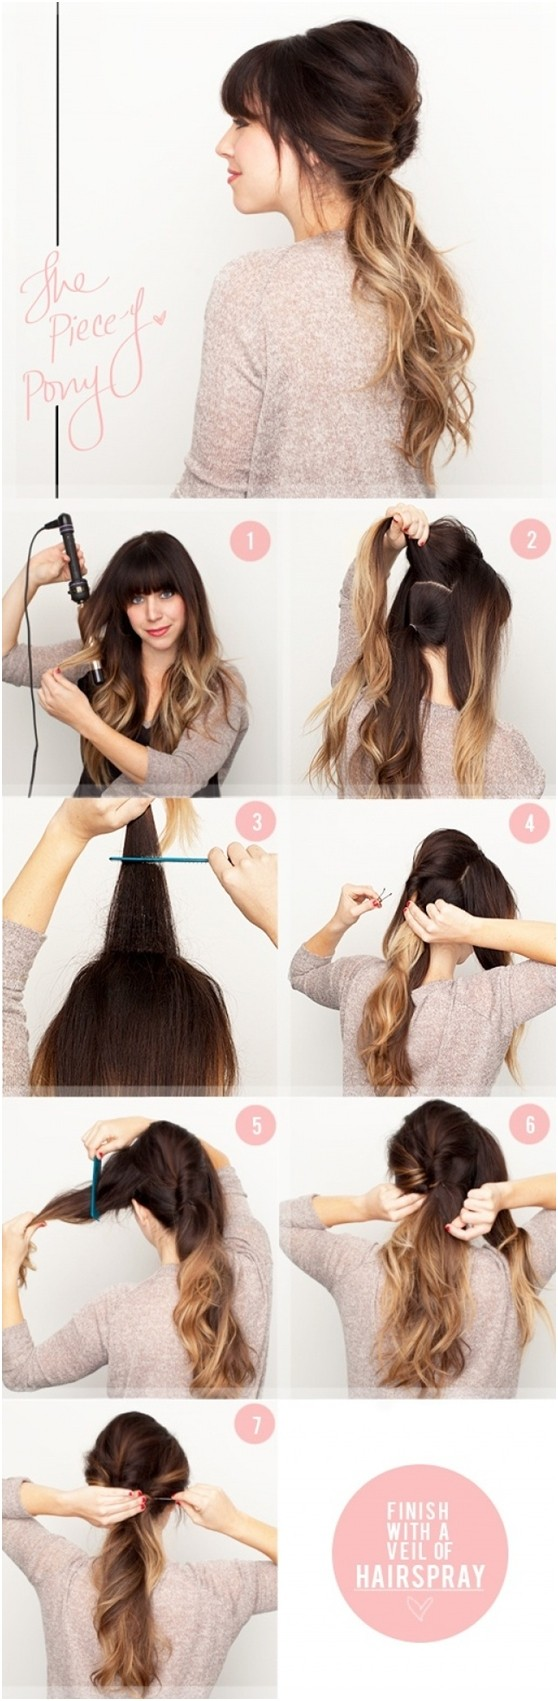 Ombre-Ponytail-Cute-And-Easy-Ponytails-Hairstyles-Tutorials.jpg